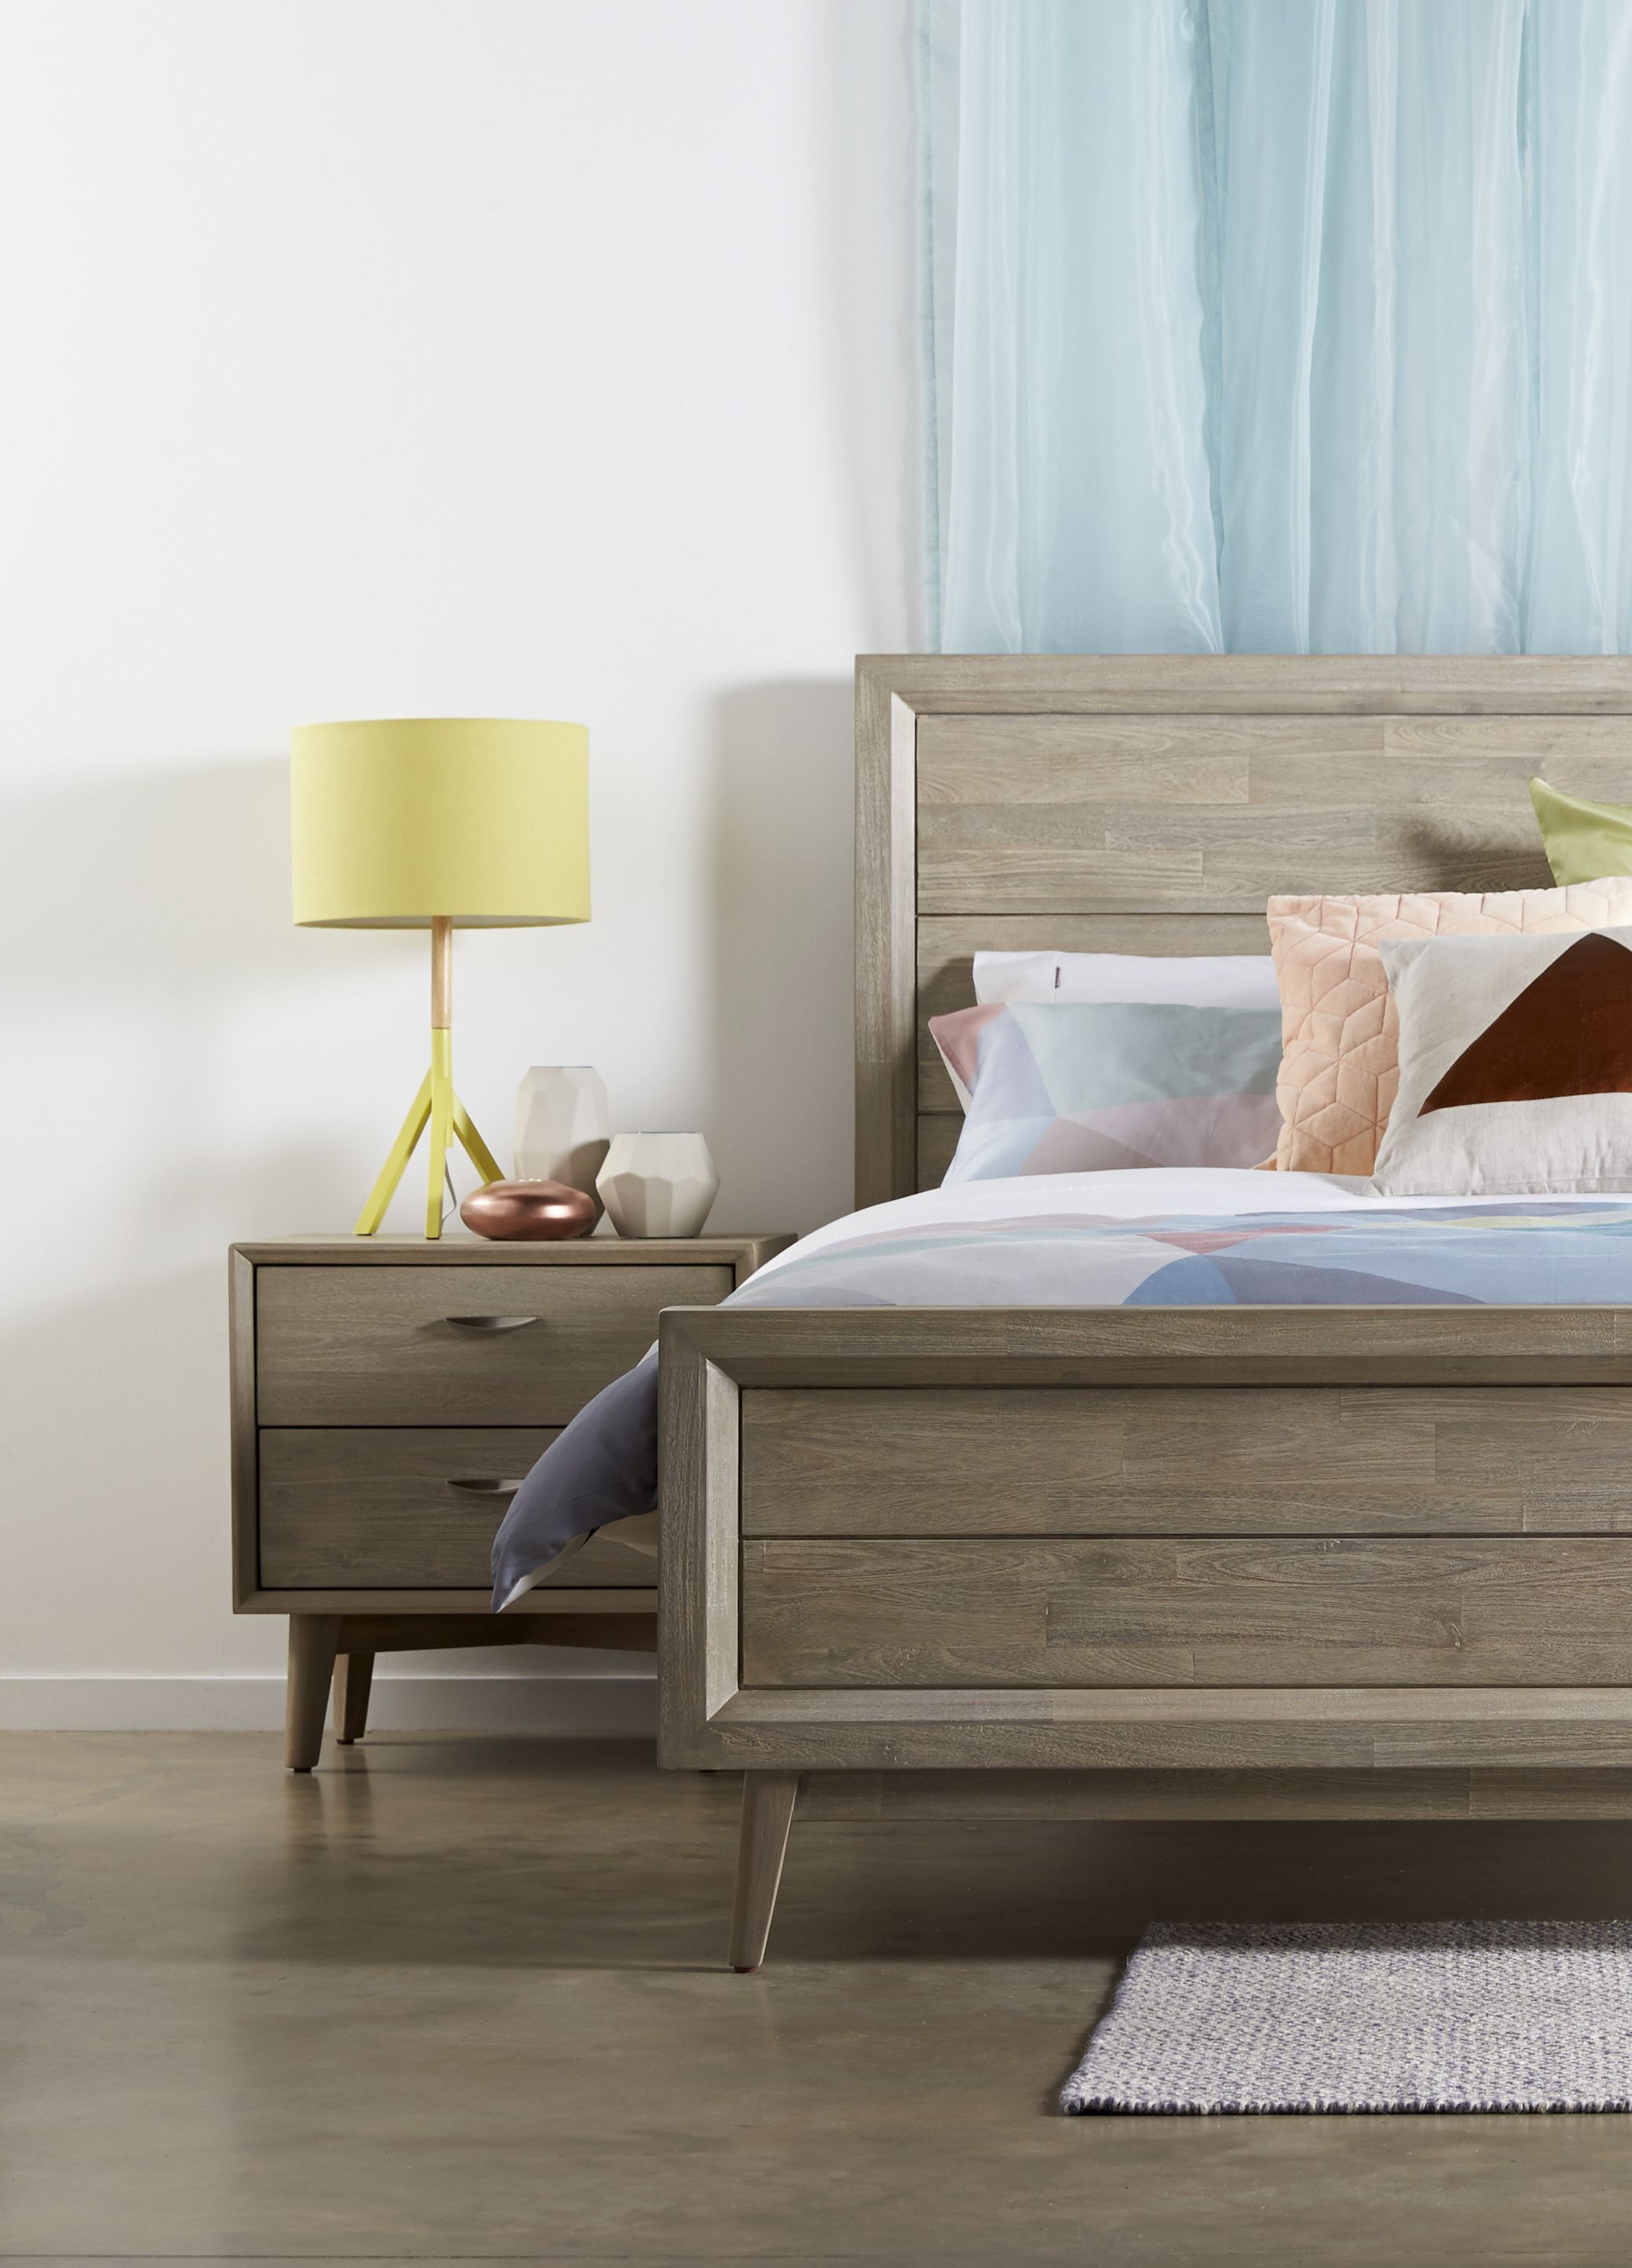 Nordic Revival The Celeste Suite From Bedshed Gives A Fresh Take